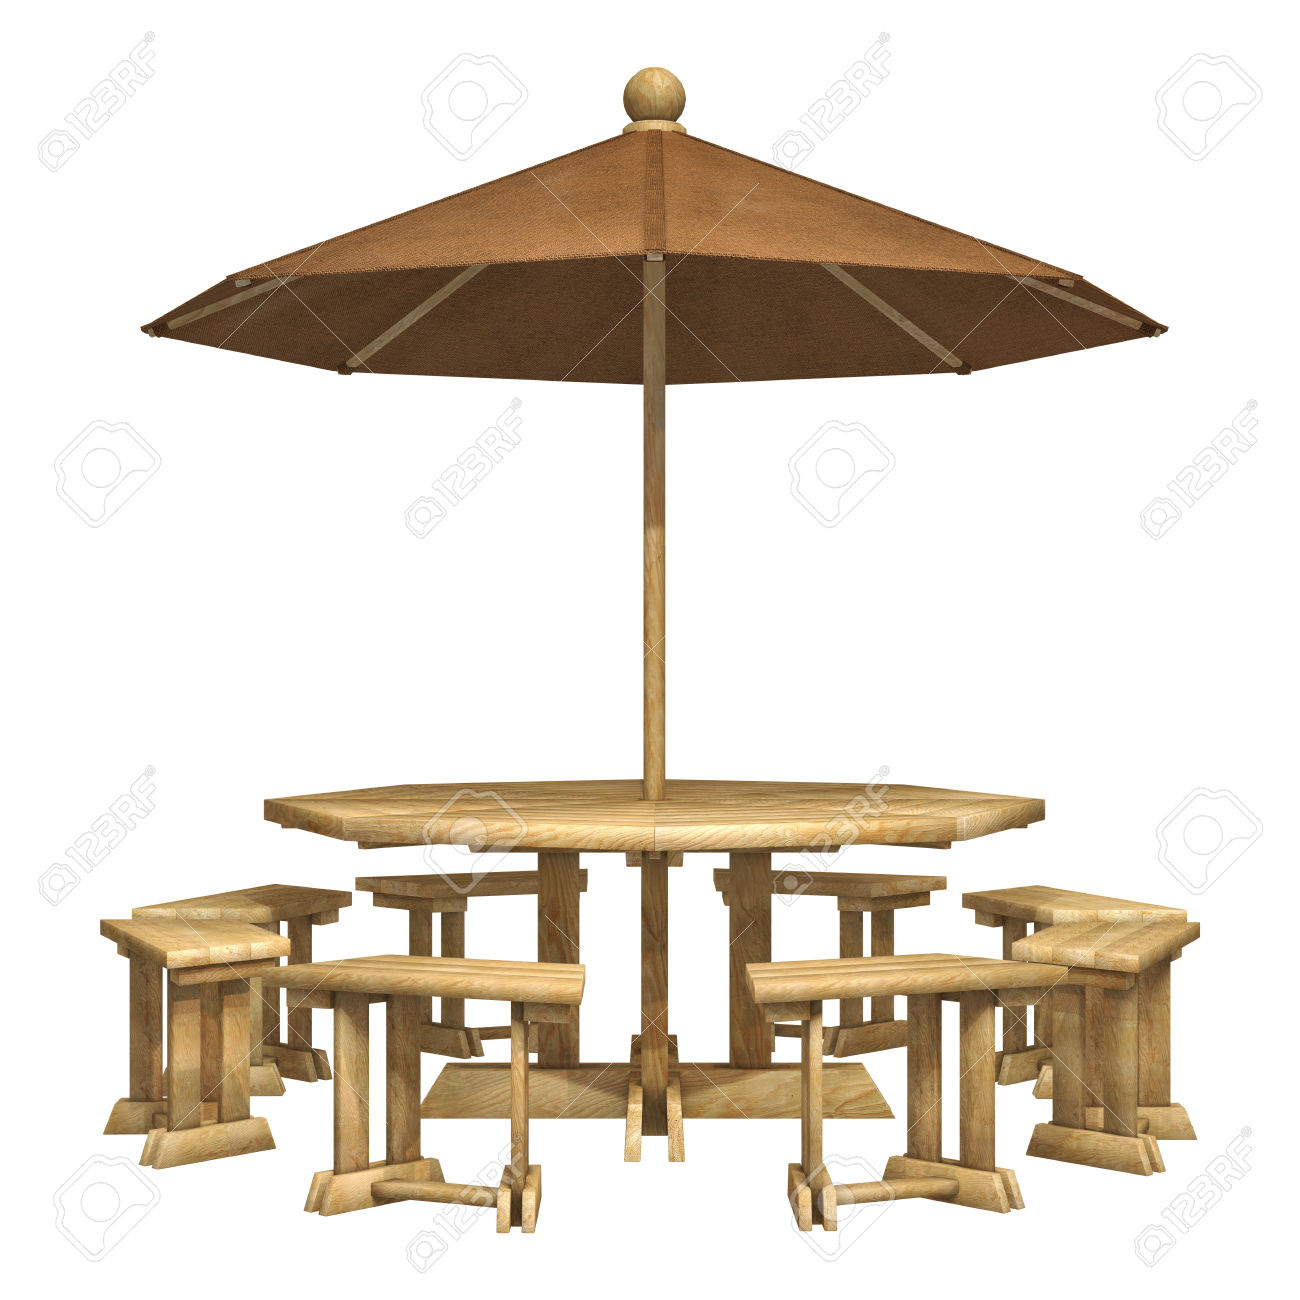 3D Digital Render Of A Wooden Patio Table, Chairs And Umbrella.